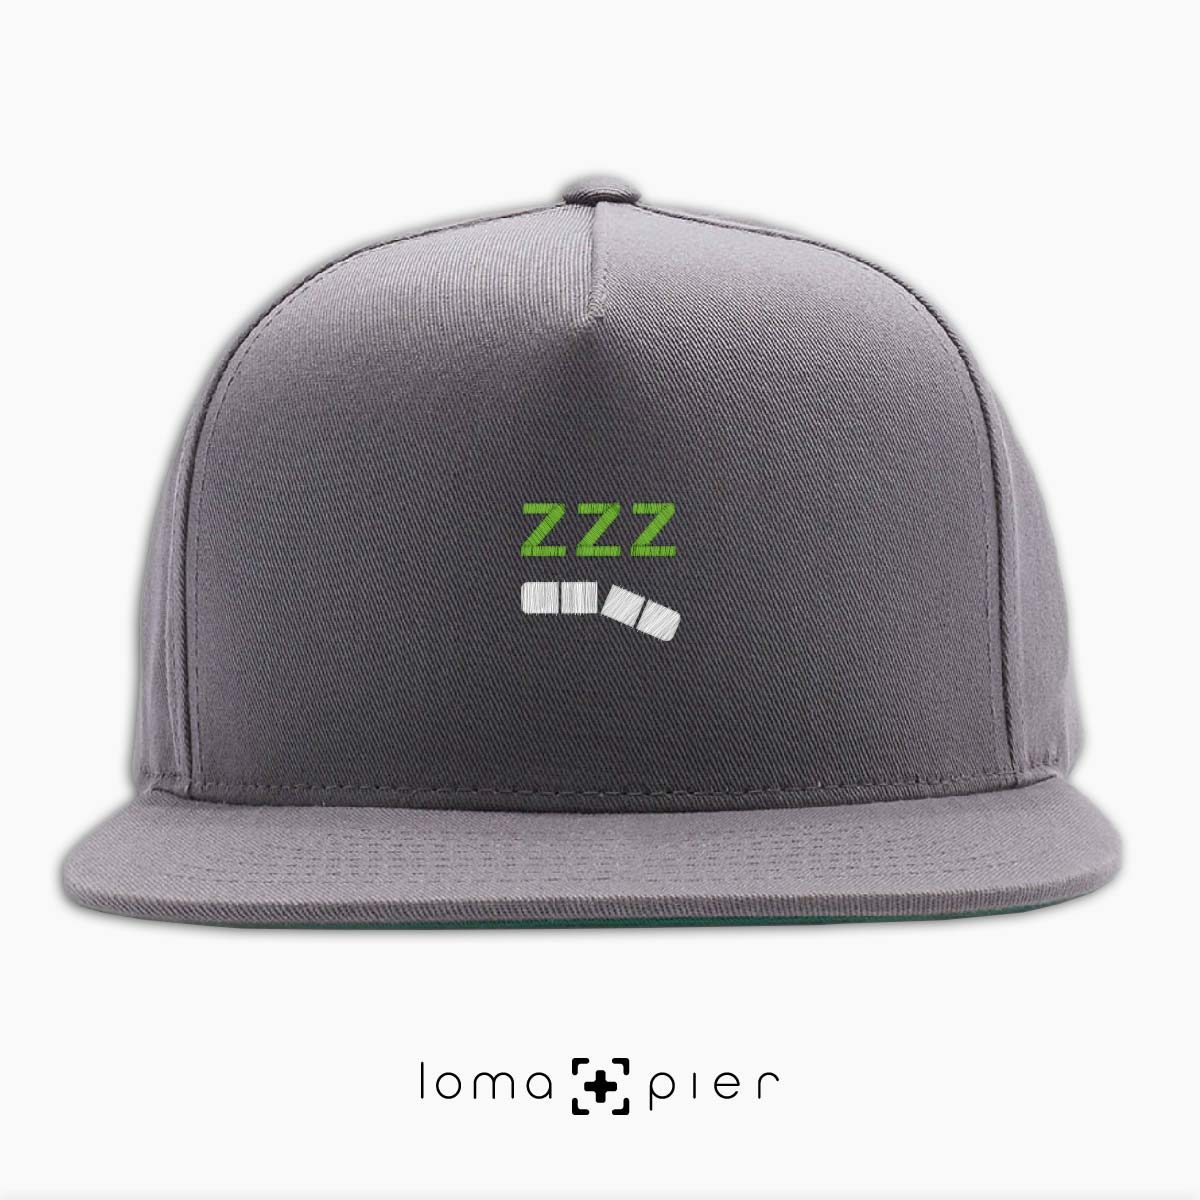 ZZZ-ANNY icon embroidered on a grey classic snapback hat with white and lime green thread by loma+pier hat store